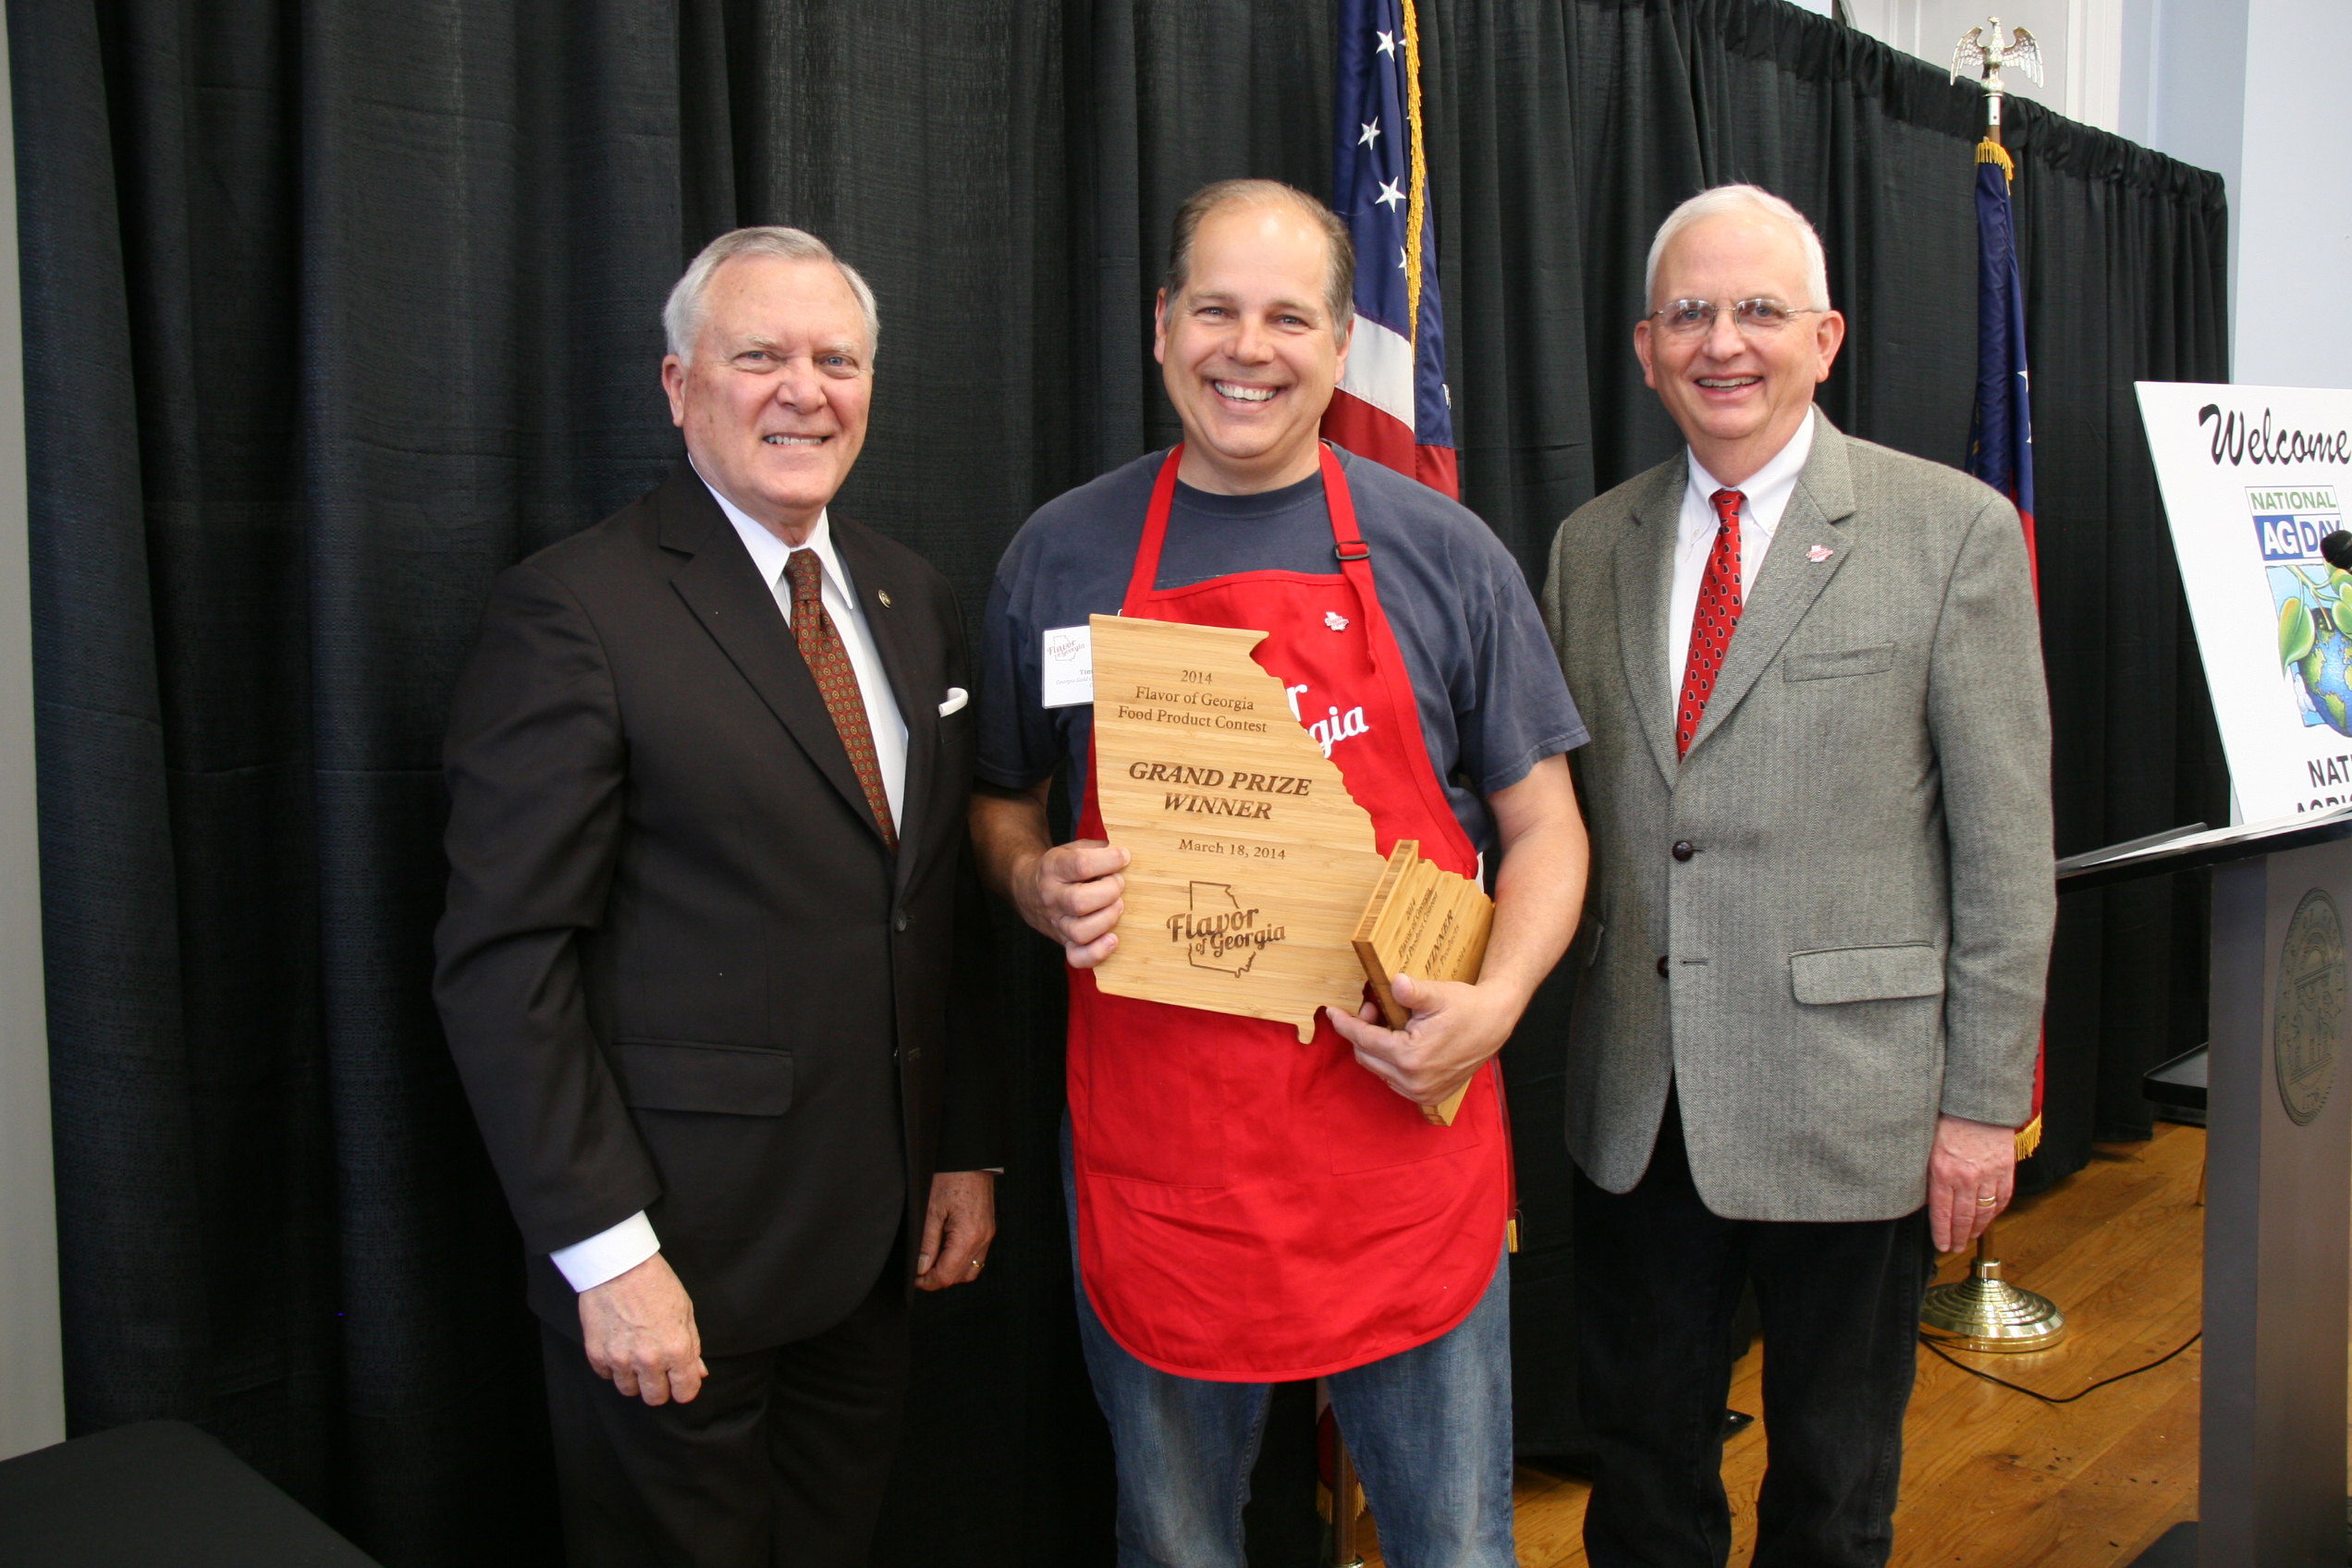 Tim Young, center, receives the Flavor of Georgia grand prize for his Georgia Gold Clothbound Cheddar from Gov. Nathan Deal and Agriculture Commissioner Gary Black on March 18.